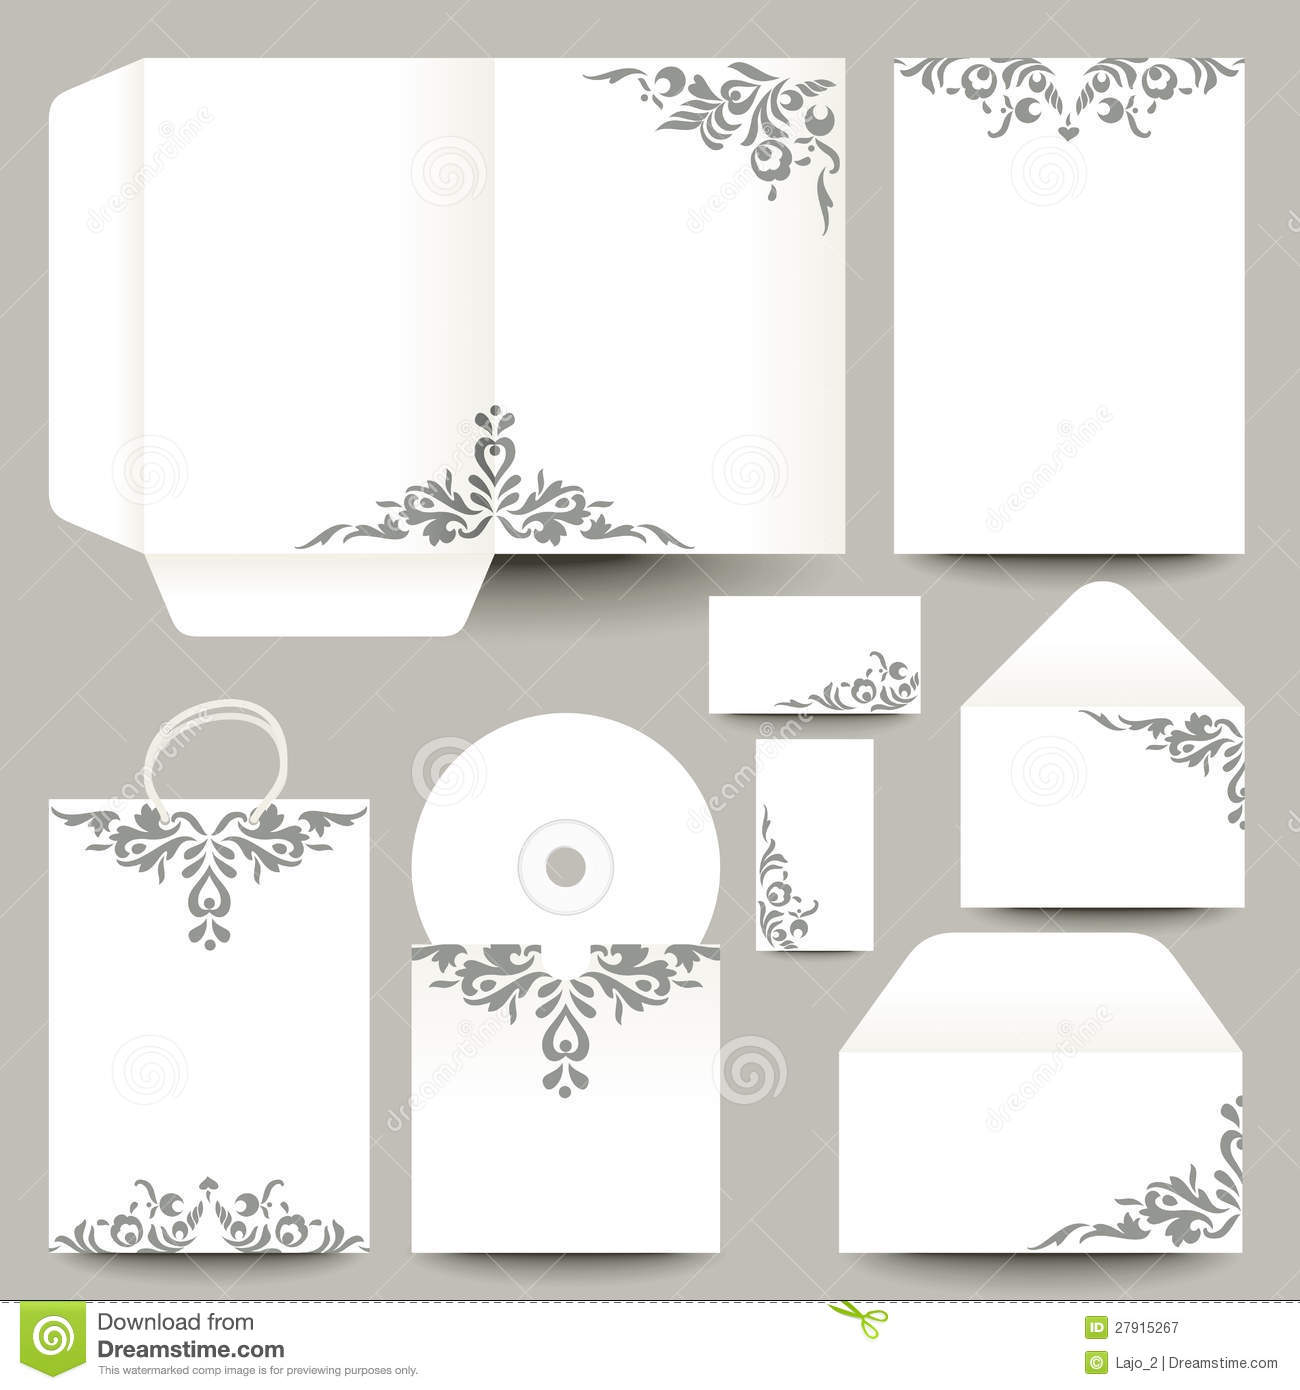 Free Vector Printable Stationery Design Template: Vector Stationery Design Royalty Free Stock Photography